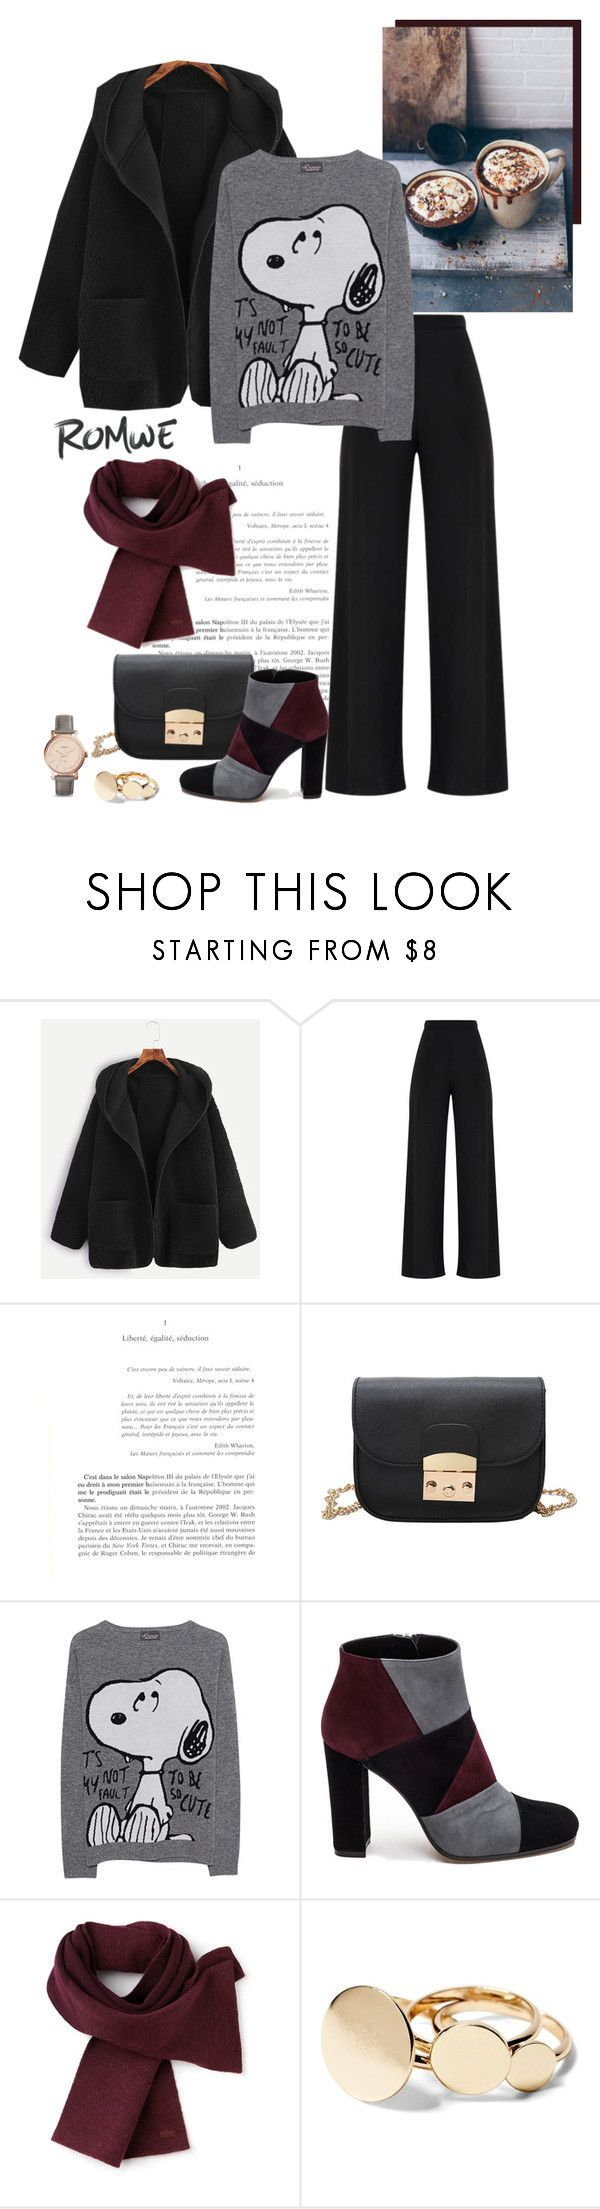 """""""Monday Morning"""" by isidora ❤ liked on Polyvore featuring Princess Goes Hollywood, Roberto Festa, Lacoste, FOSSIL, Boots, romwe, Sweatshirt, pants and coat"""